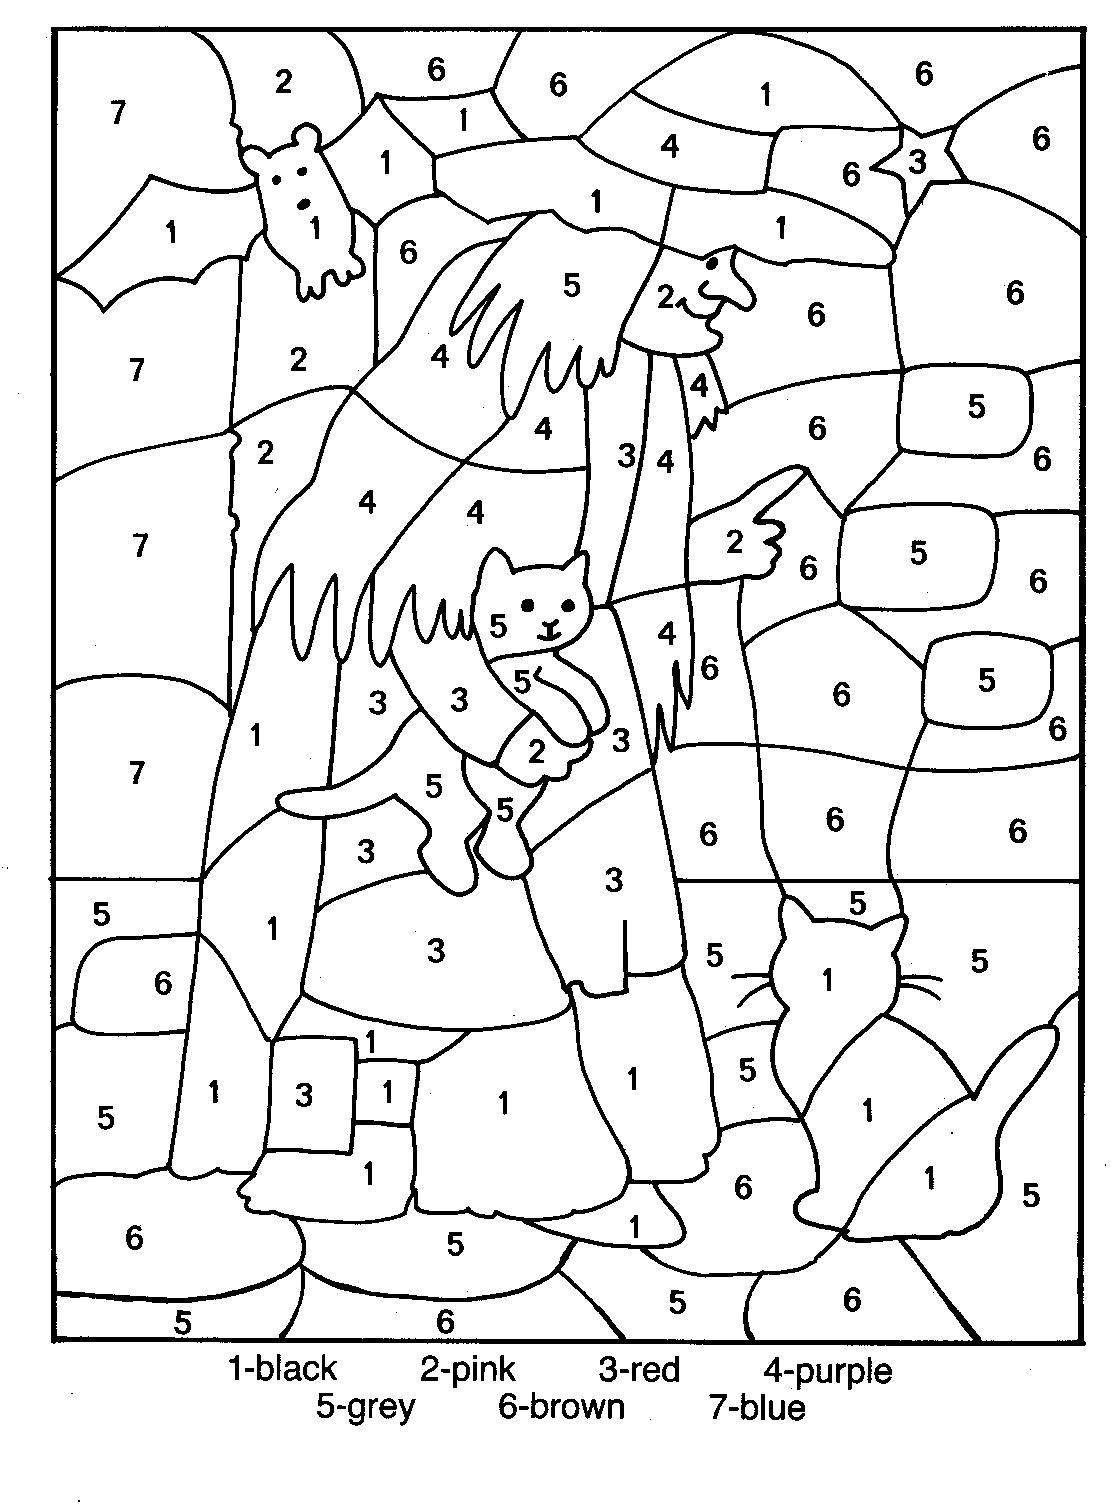 Coloring worksheet by numbers - Color By Number Coloring Pages For Kids 4